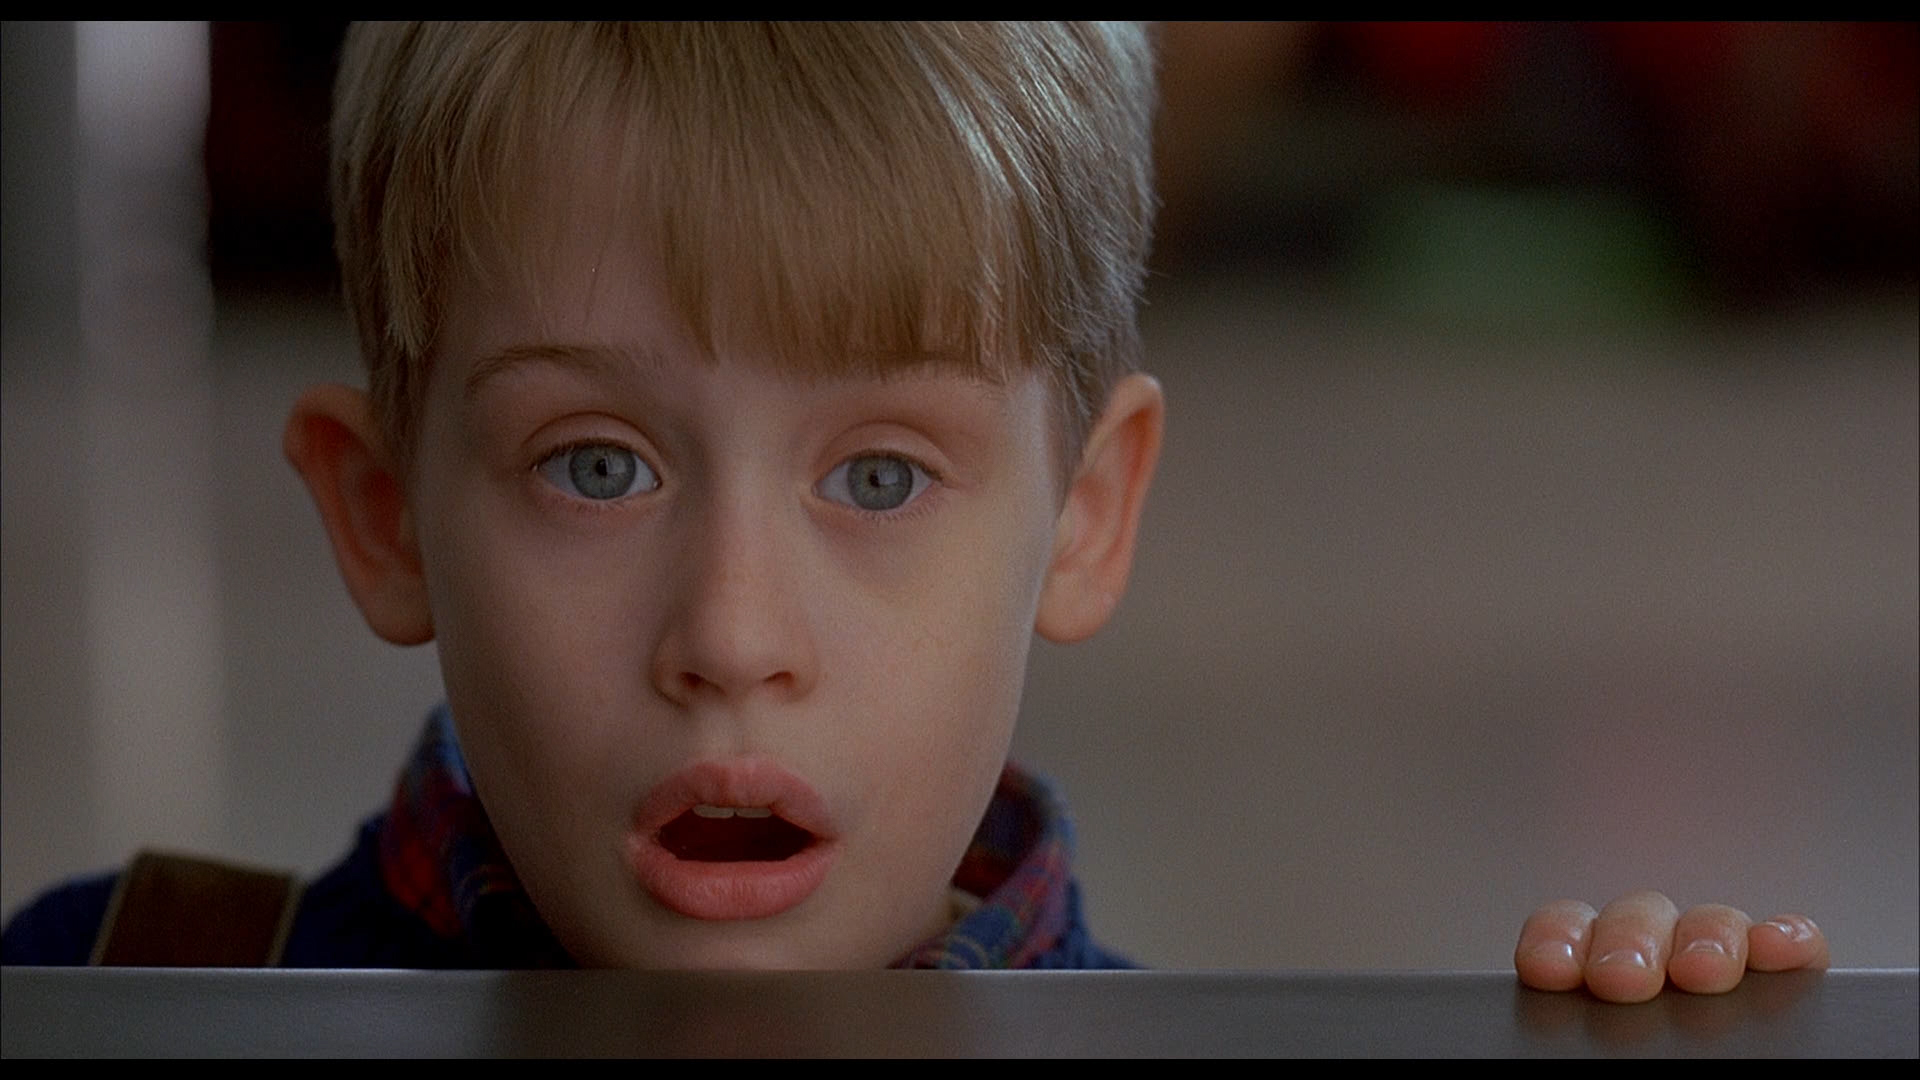 Home alone movie hd wallpapers for Wallpaper home alone